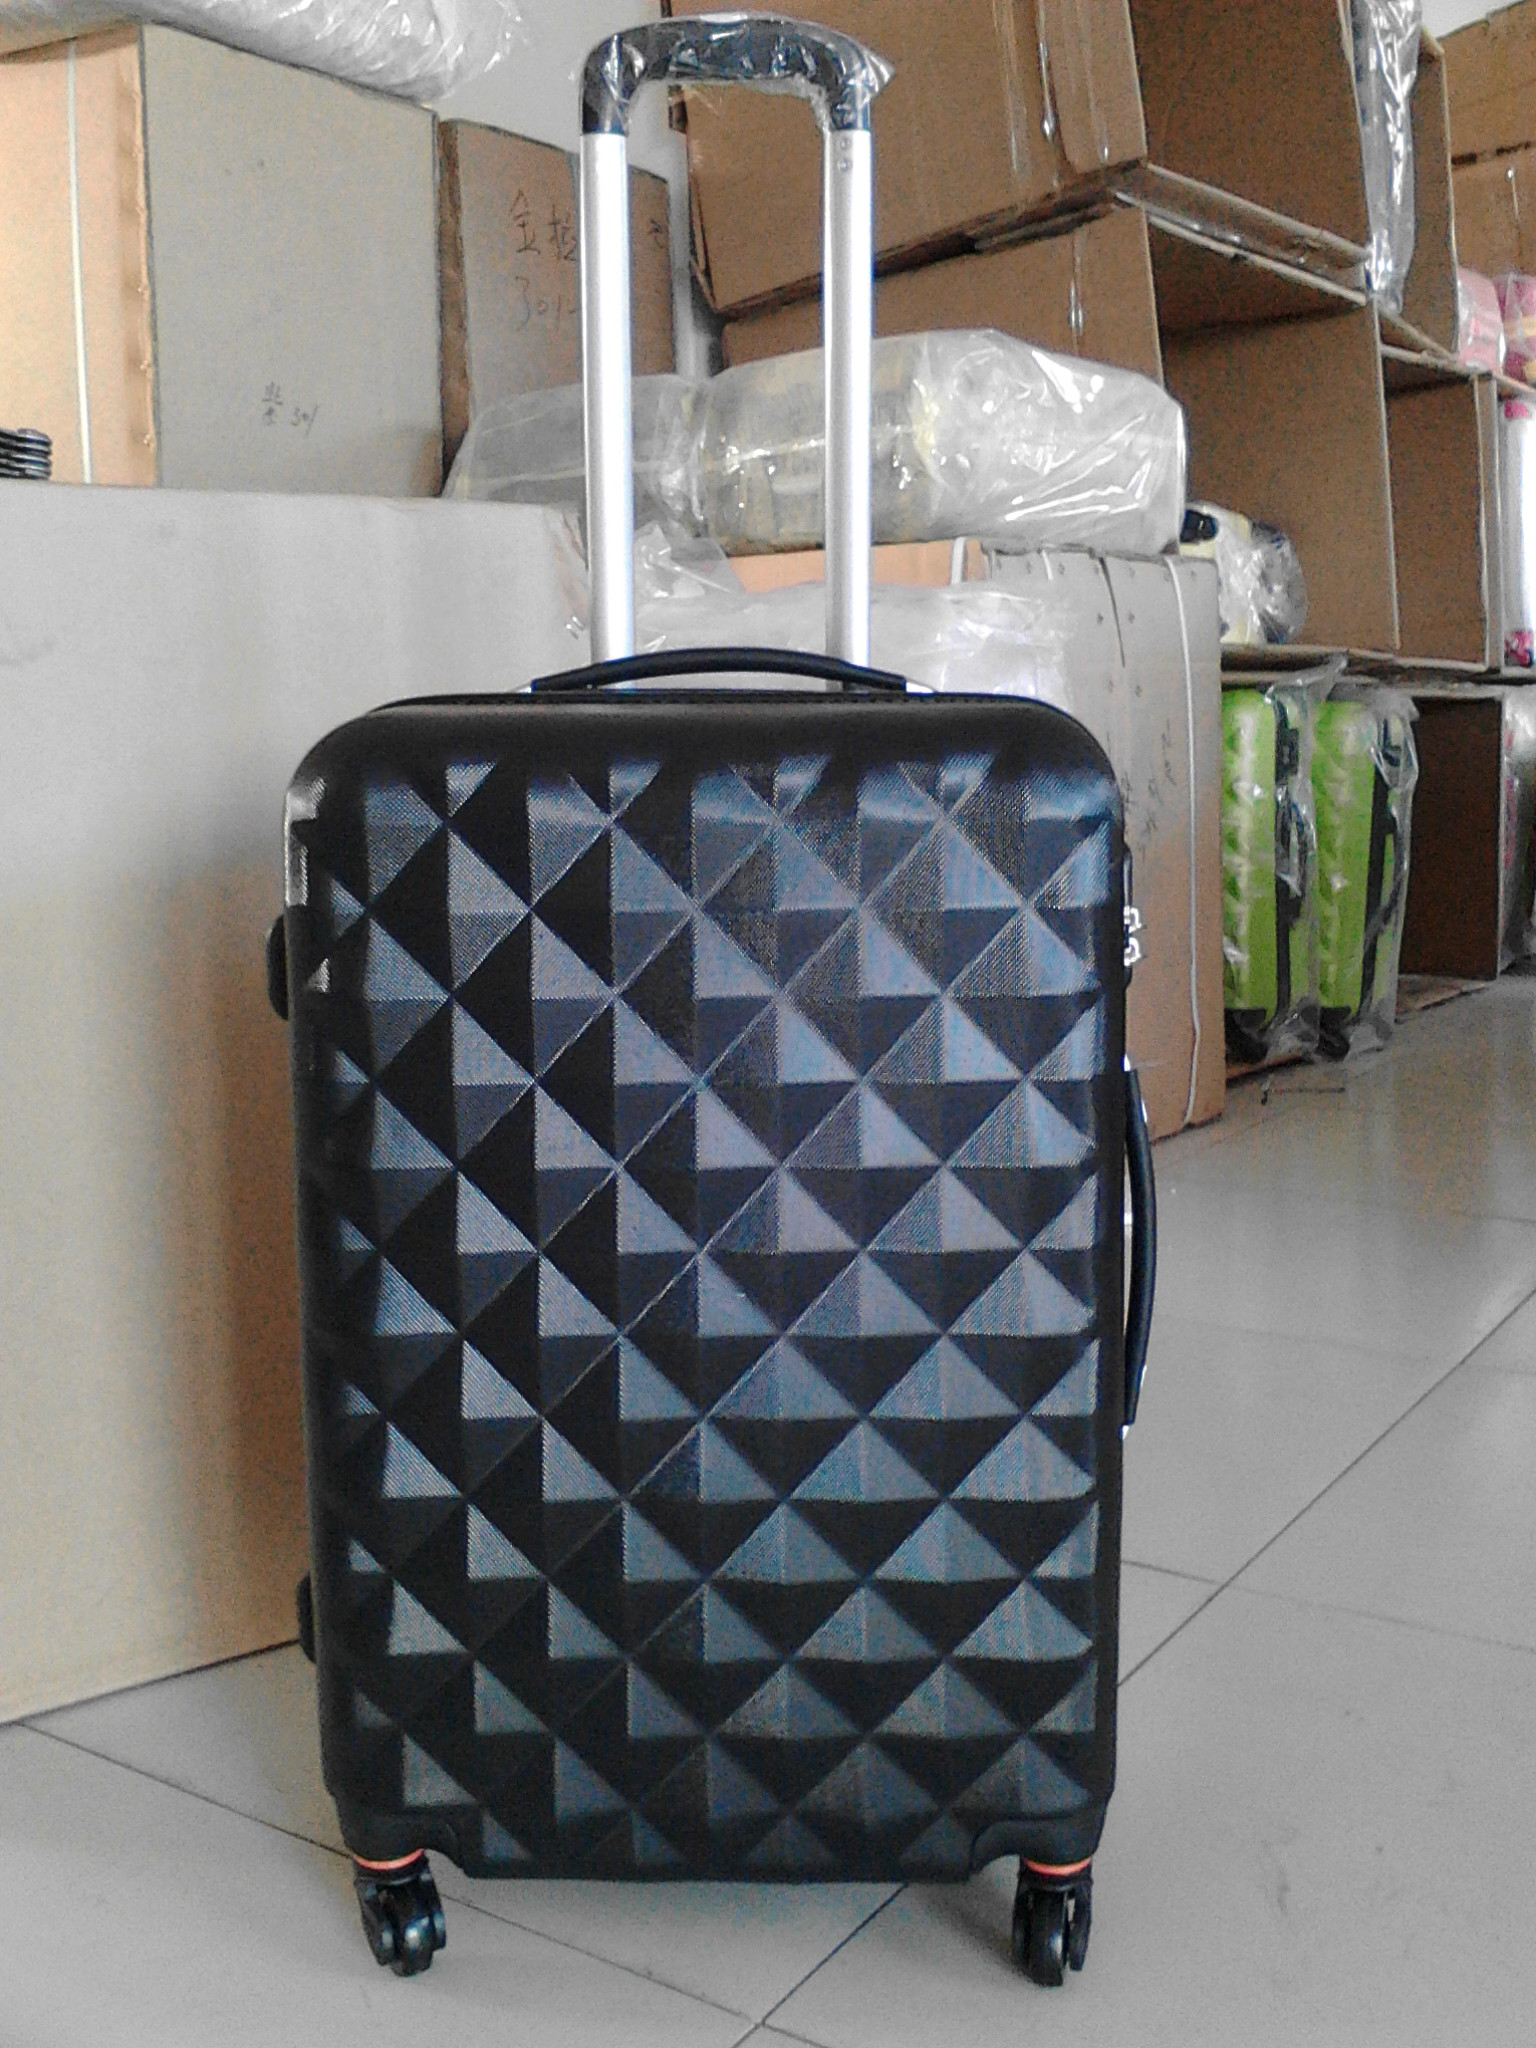 vantage travel bag diamonds trolley cases luggage bag